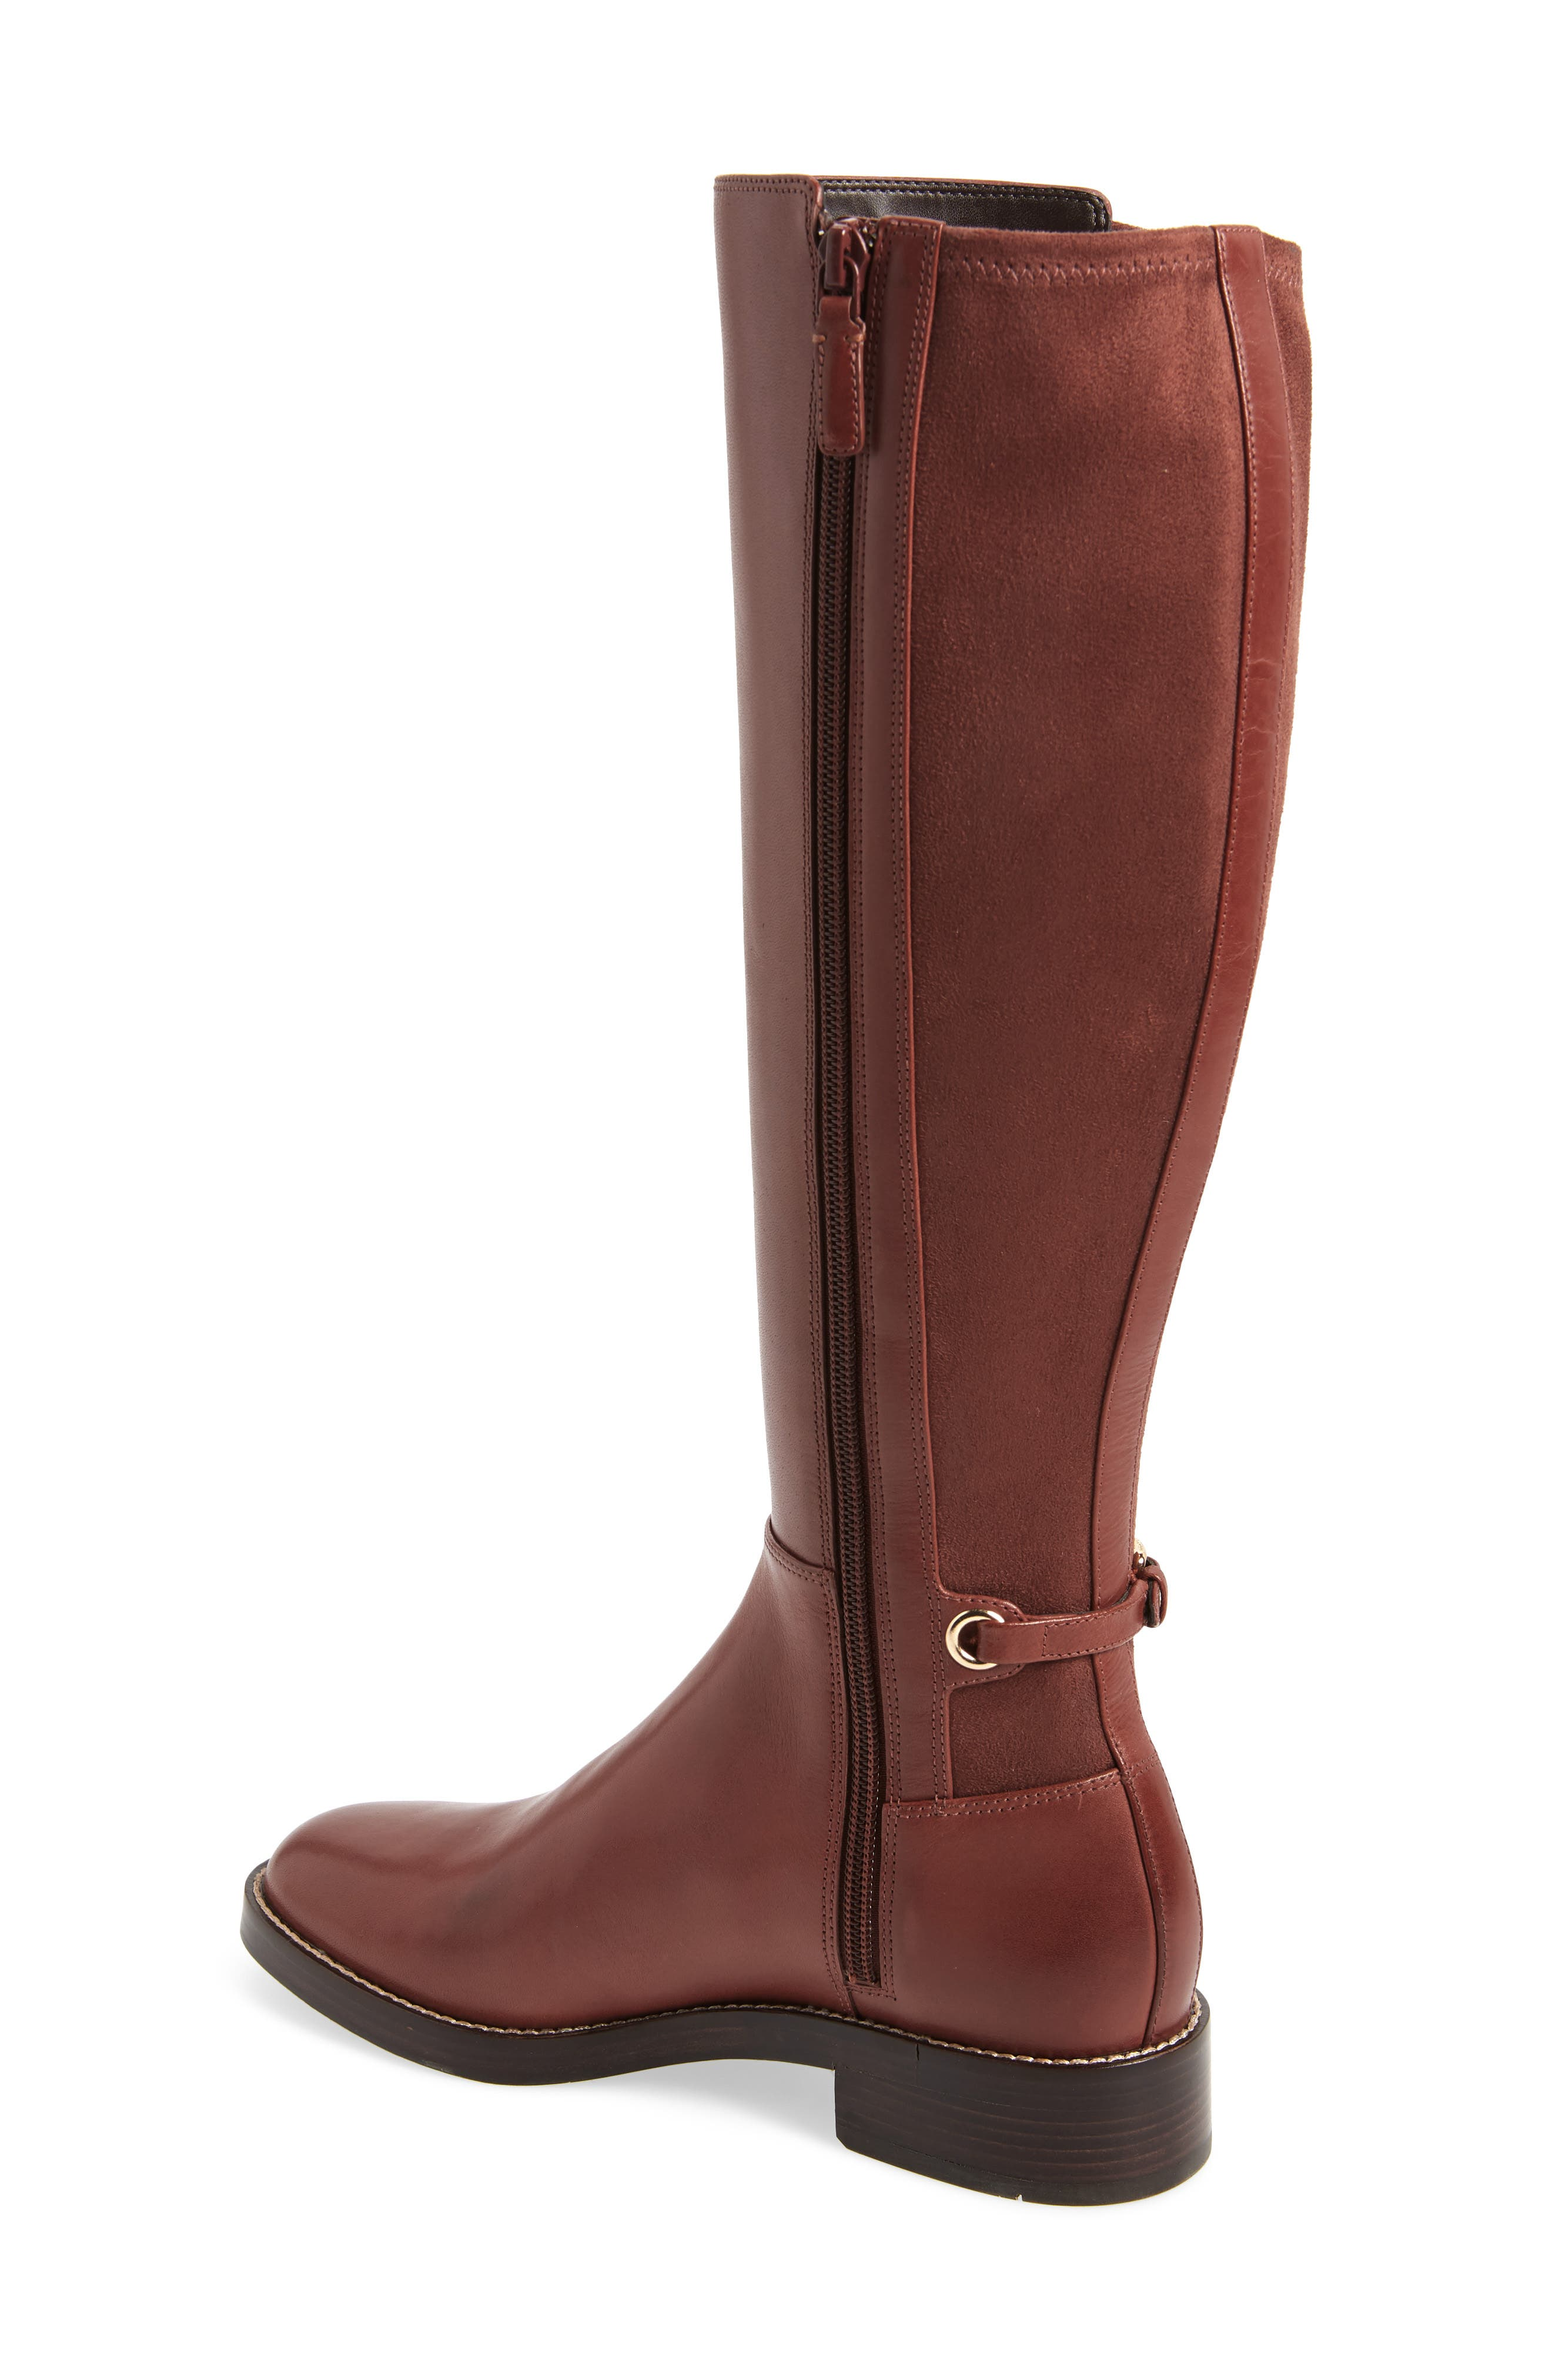 Parker Grand Stretch Knee High Boot,                             Alternate thumbnail 2, color,                             CHERRY MAHOGANY LEATHER